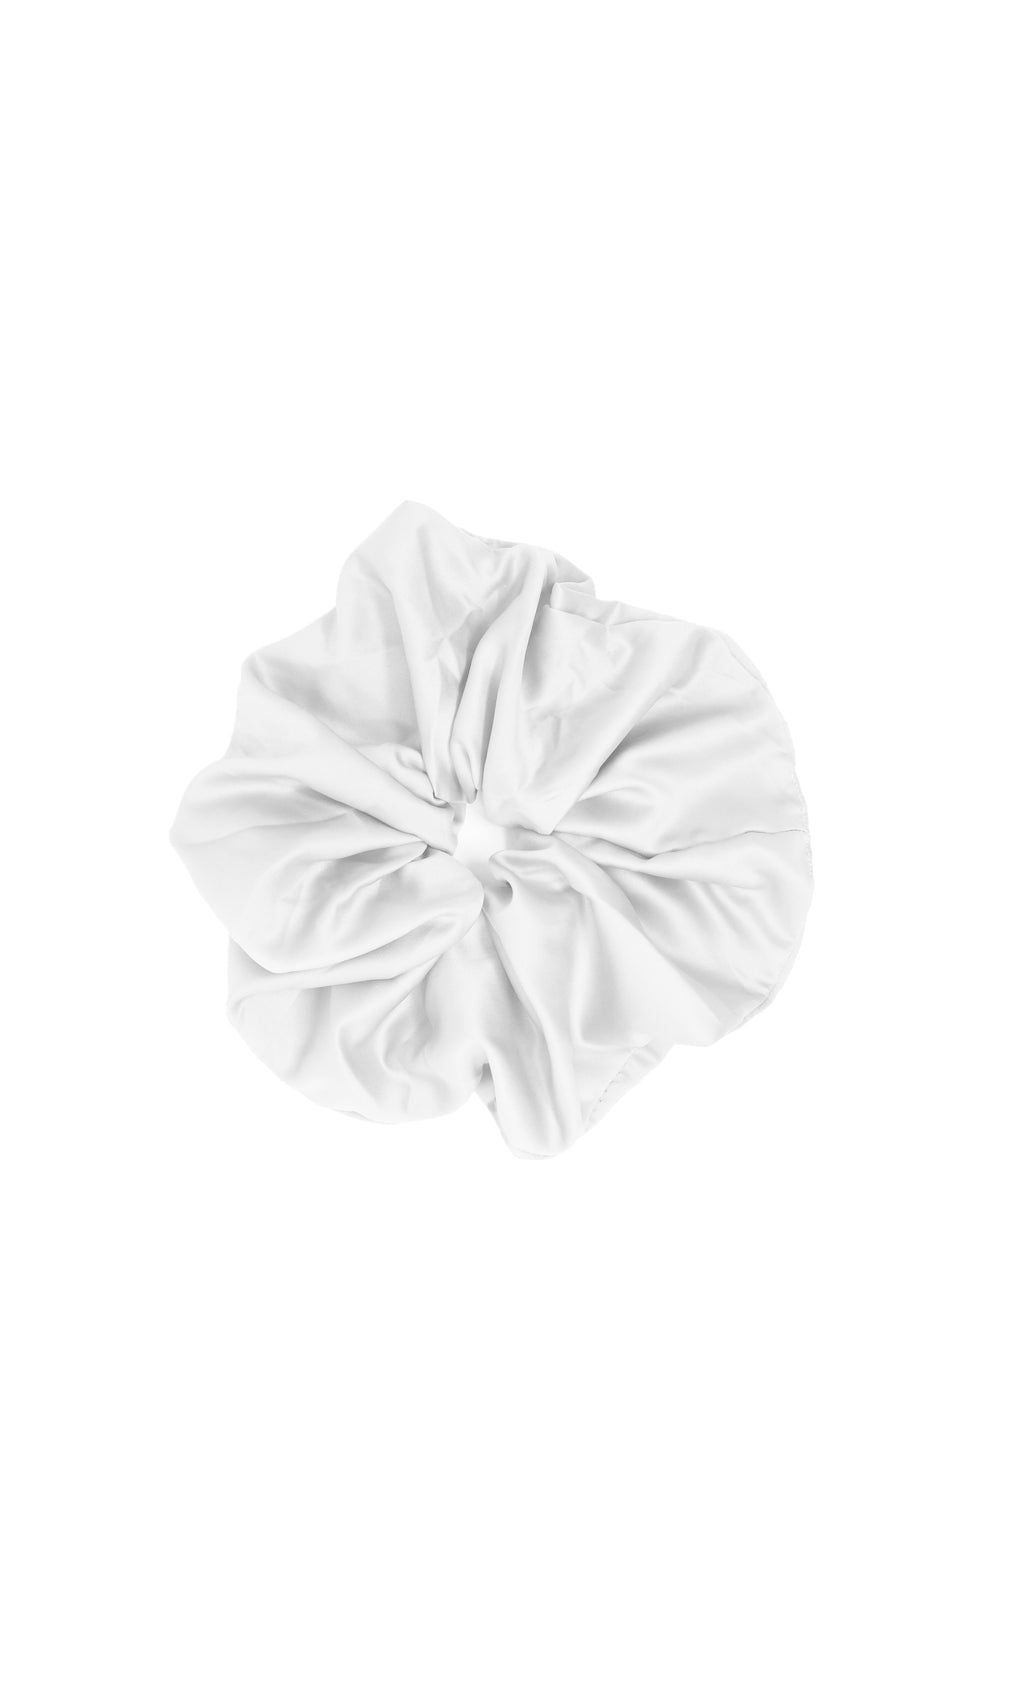 Super Size Me White Oversized Pure 100% Silk Handmade Scrunchie Soft Luxury Spa Hair Tie